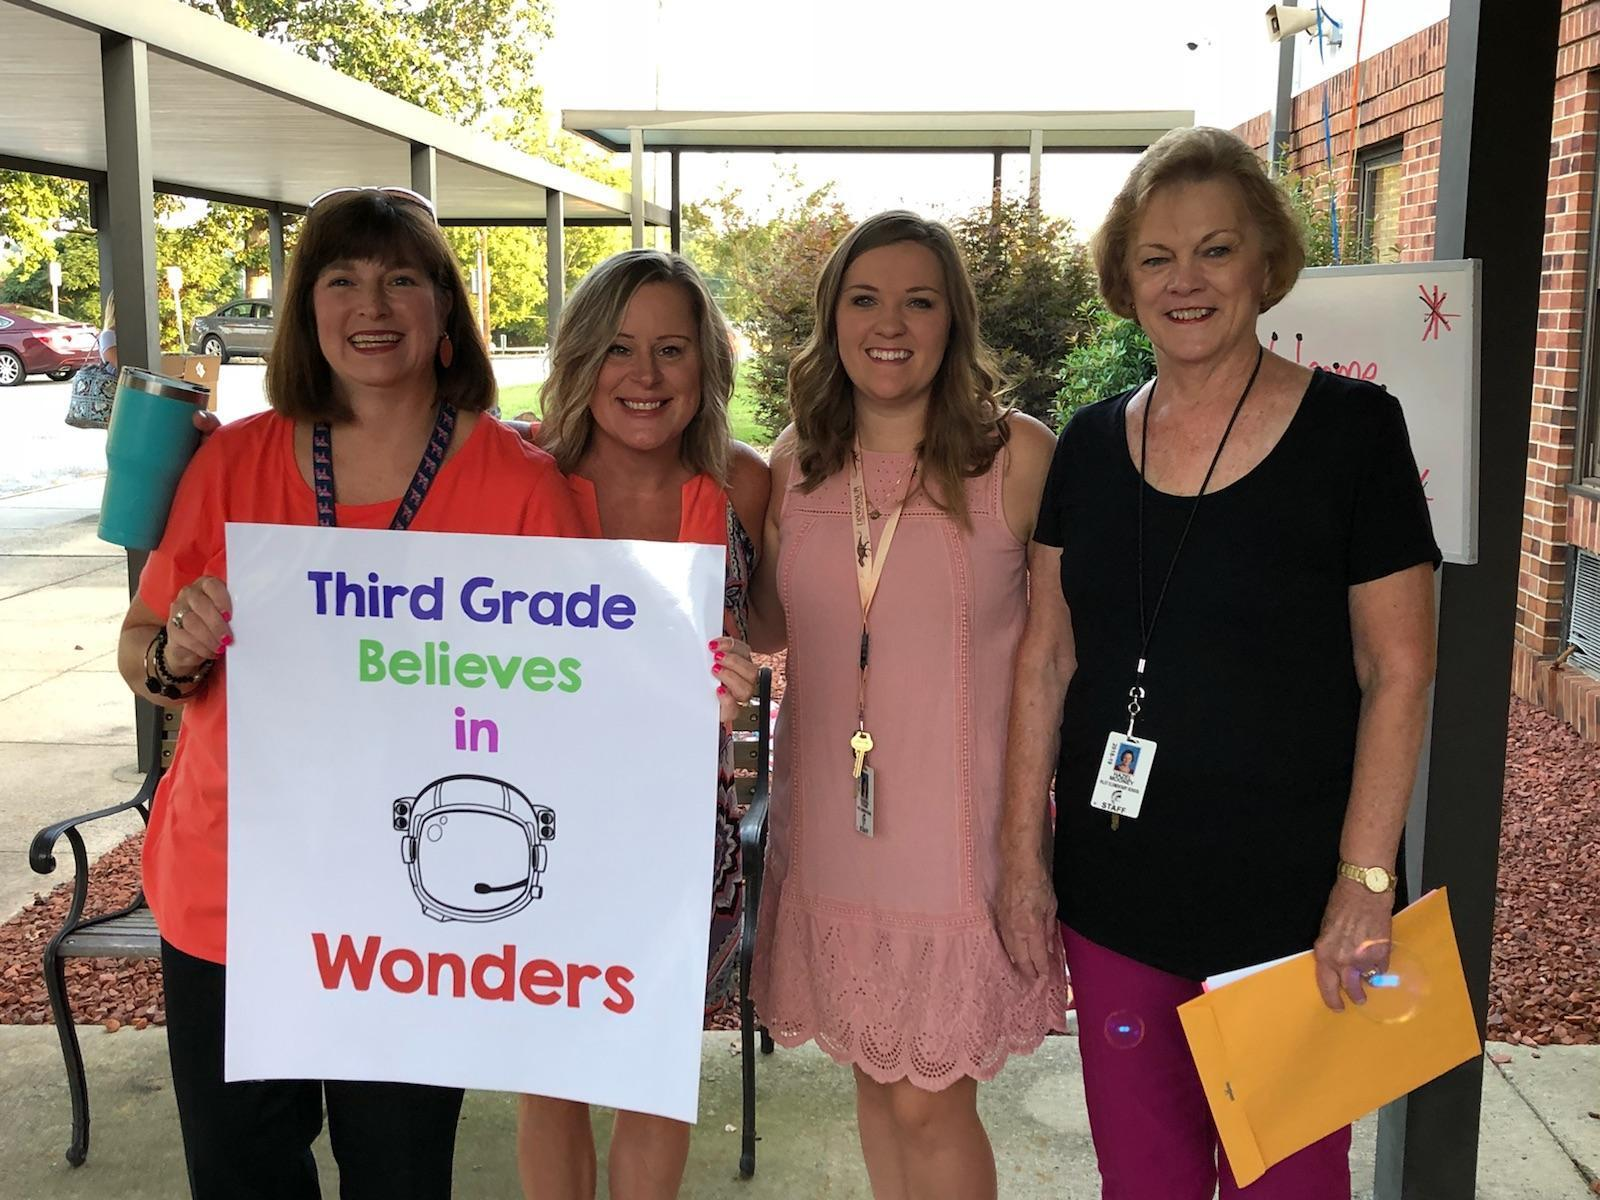 Third grade teachers.